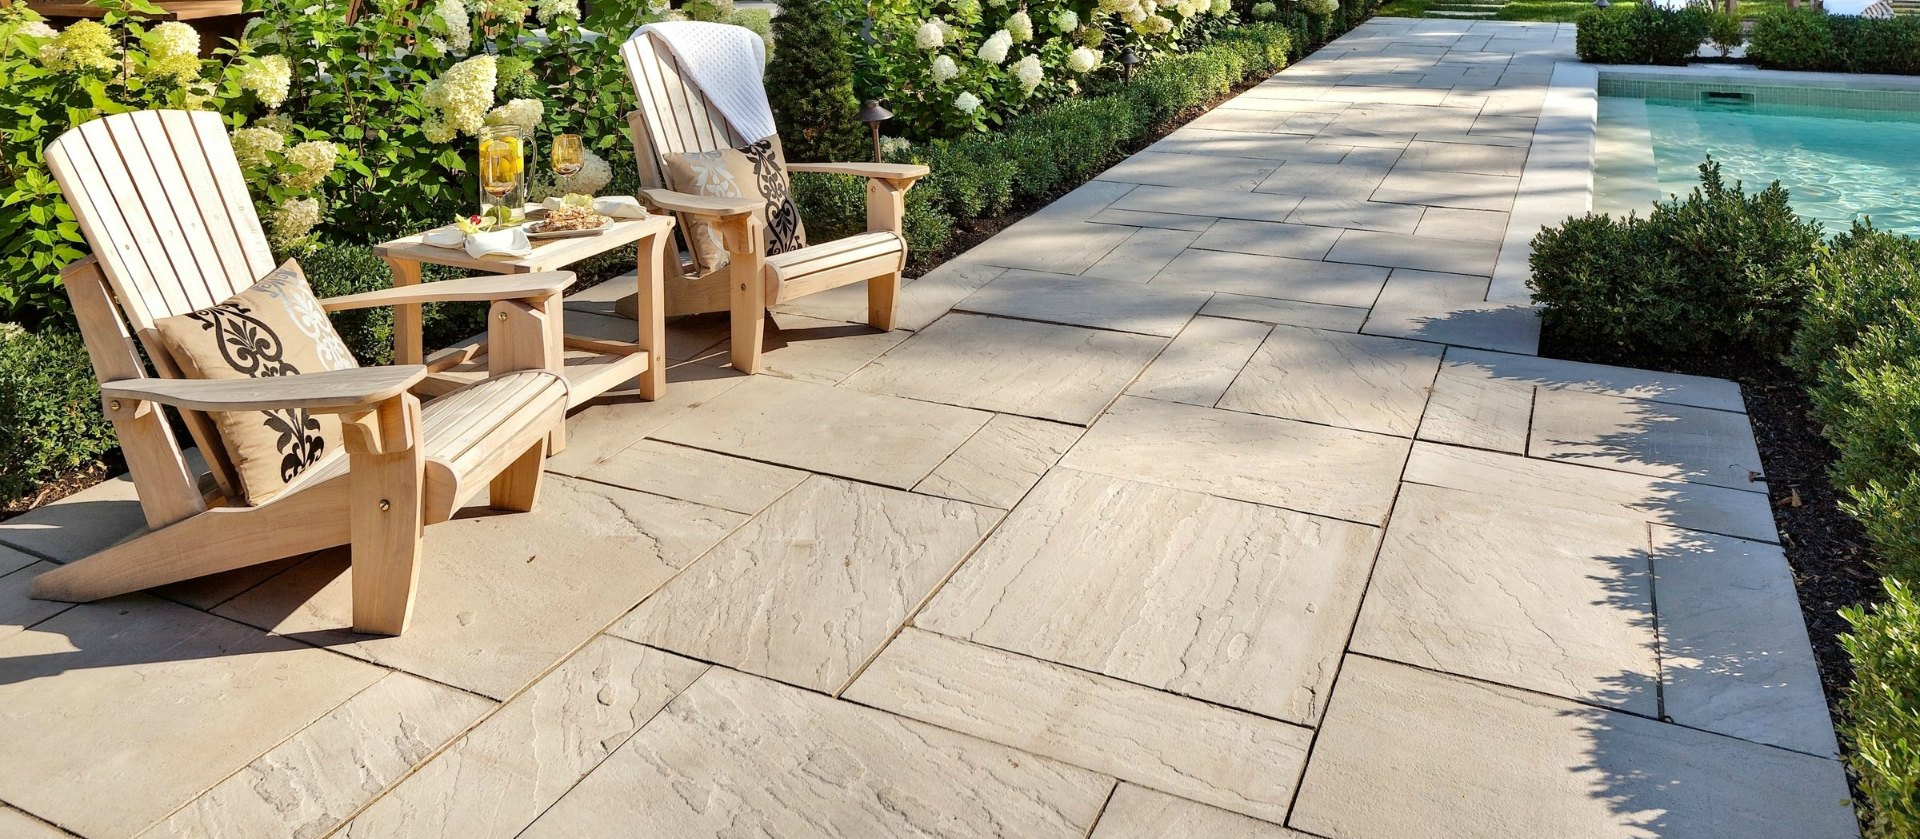 Outdoor Living, Patios and Walkways